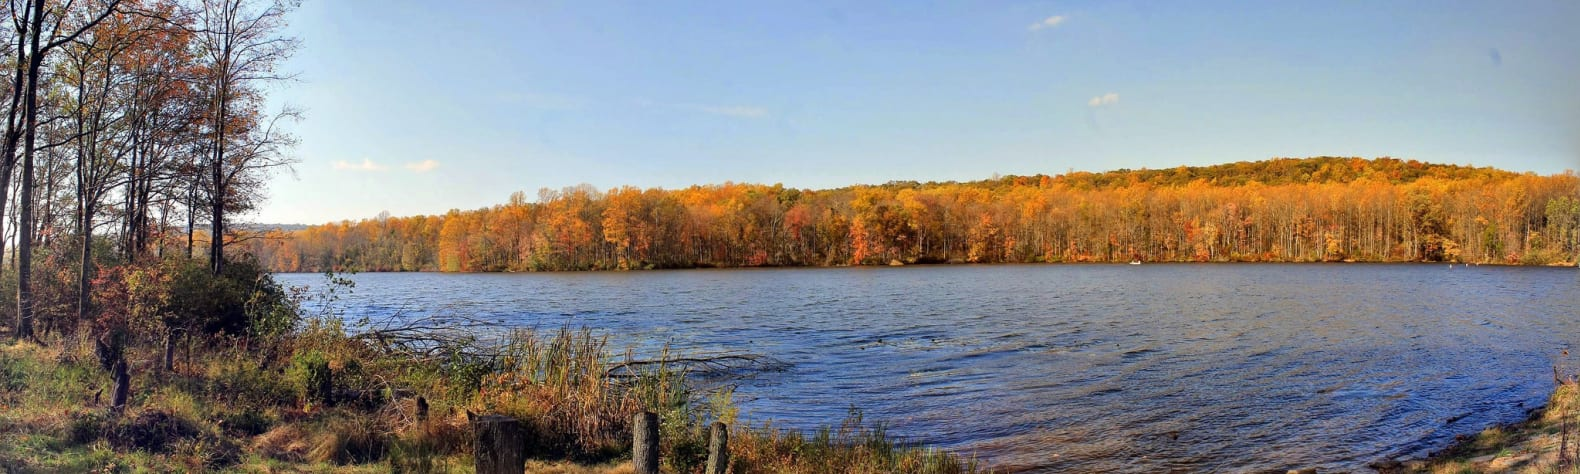 French Creek State Park